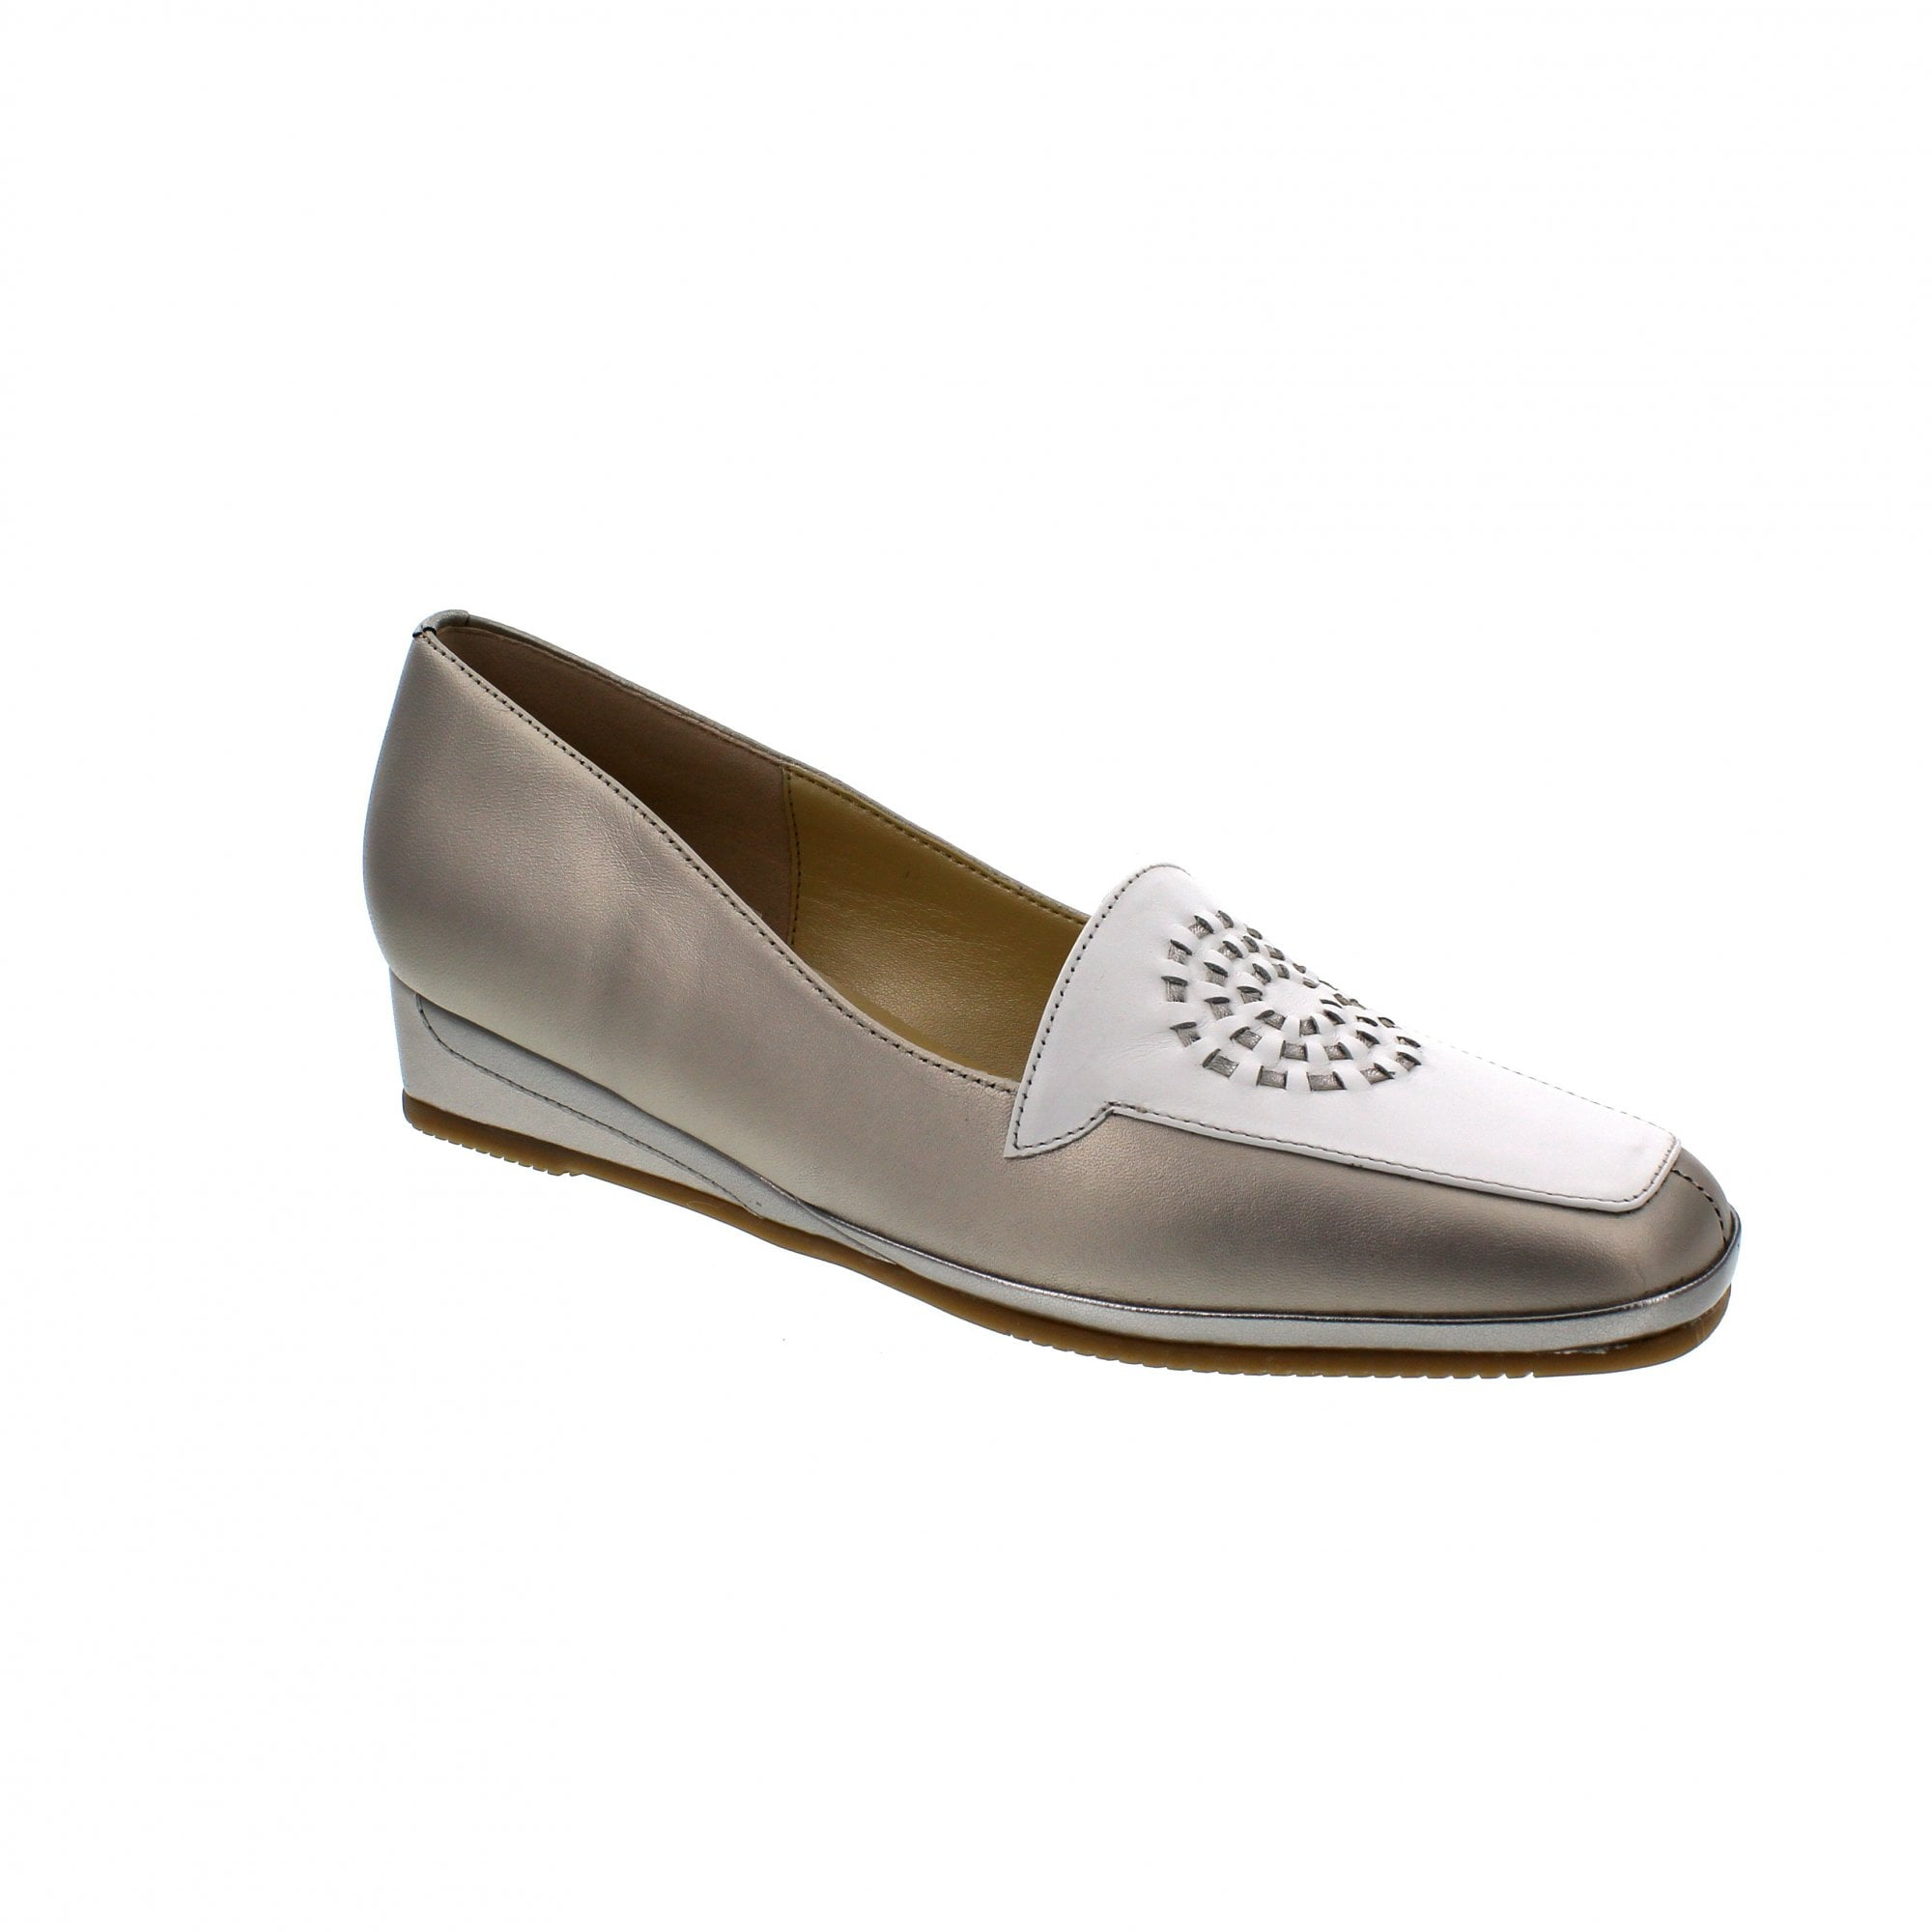 17bfbd0ce0591 Van Dal Verona 0567820 Taupe/White Slip On Shoes | Rogerson Shoes